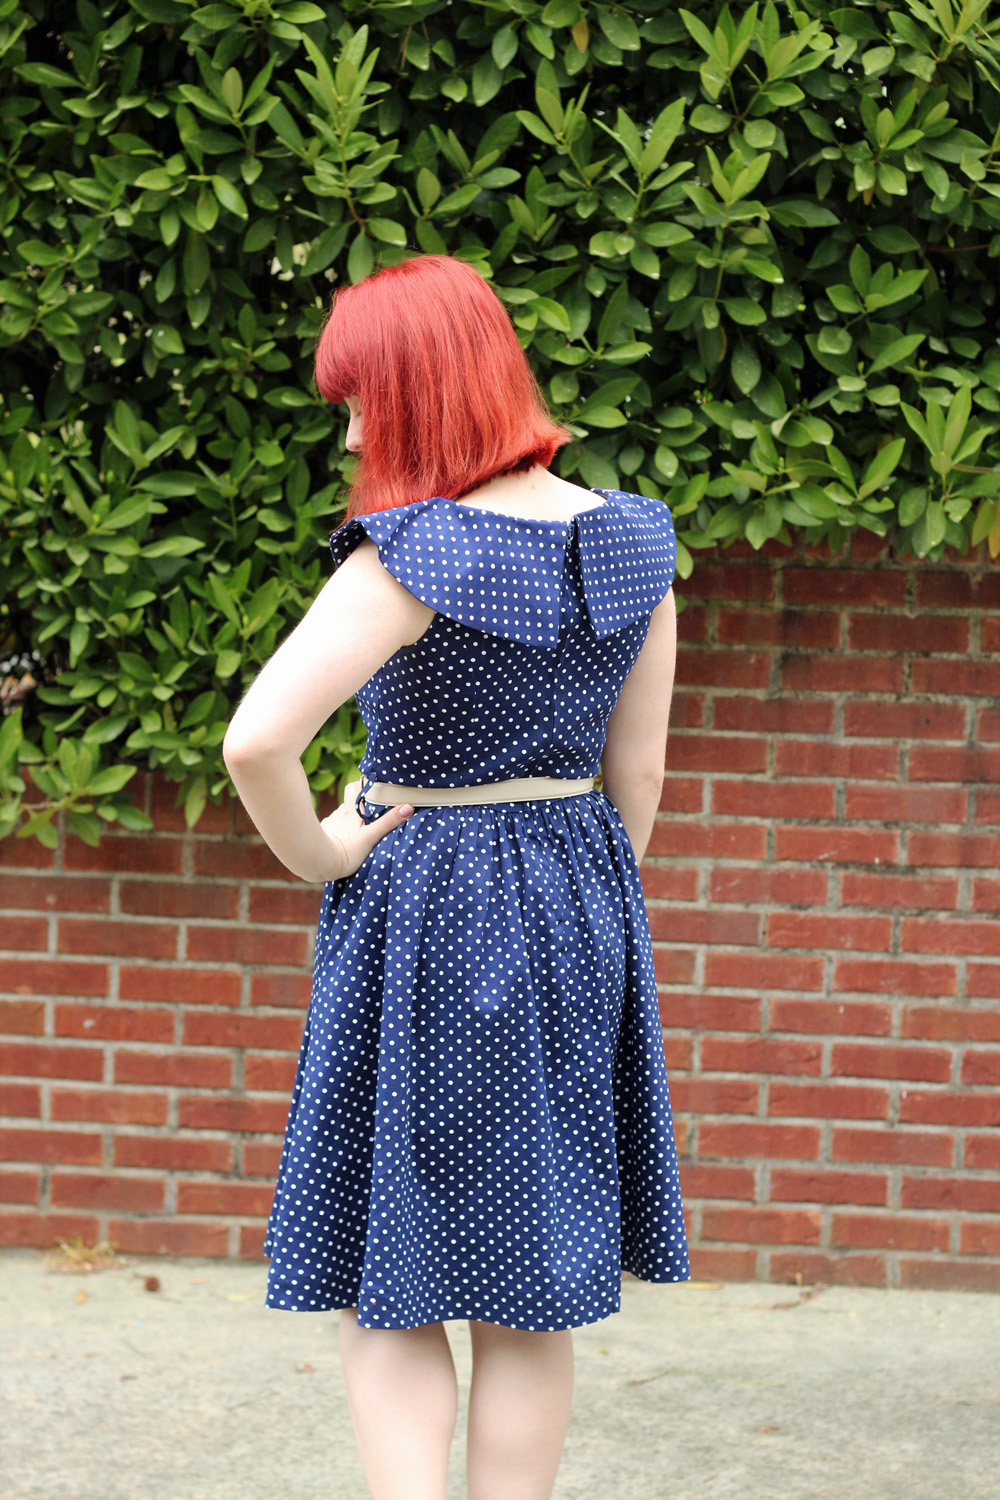 Red Blunt Bob and Shawl Collar Polka Dot Dress